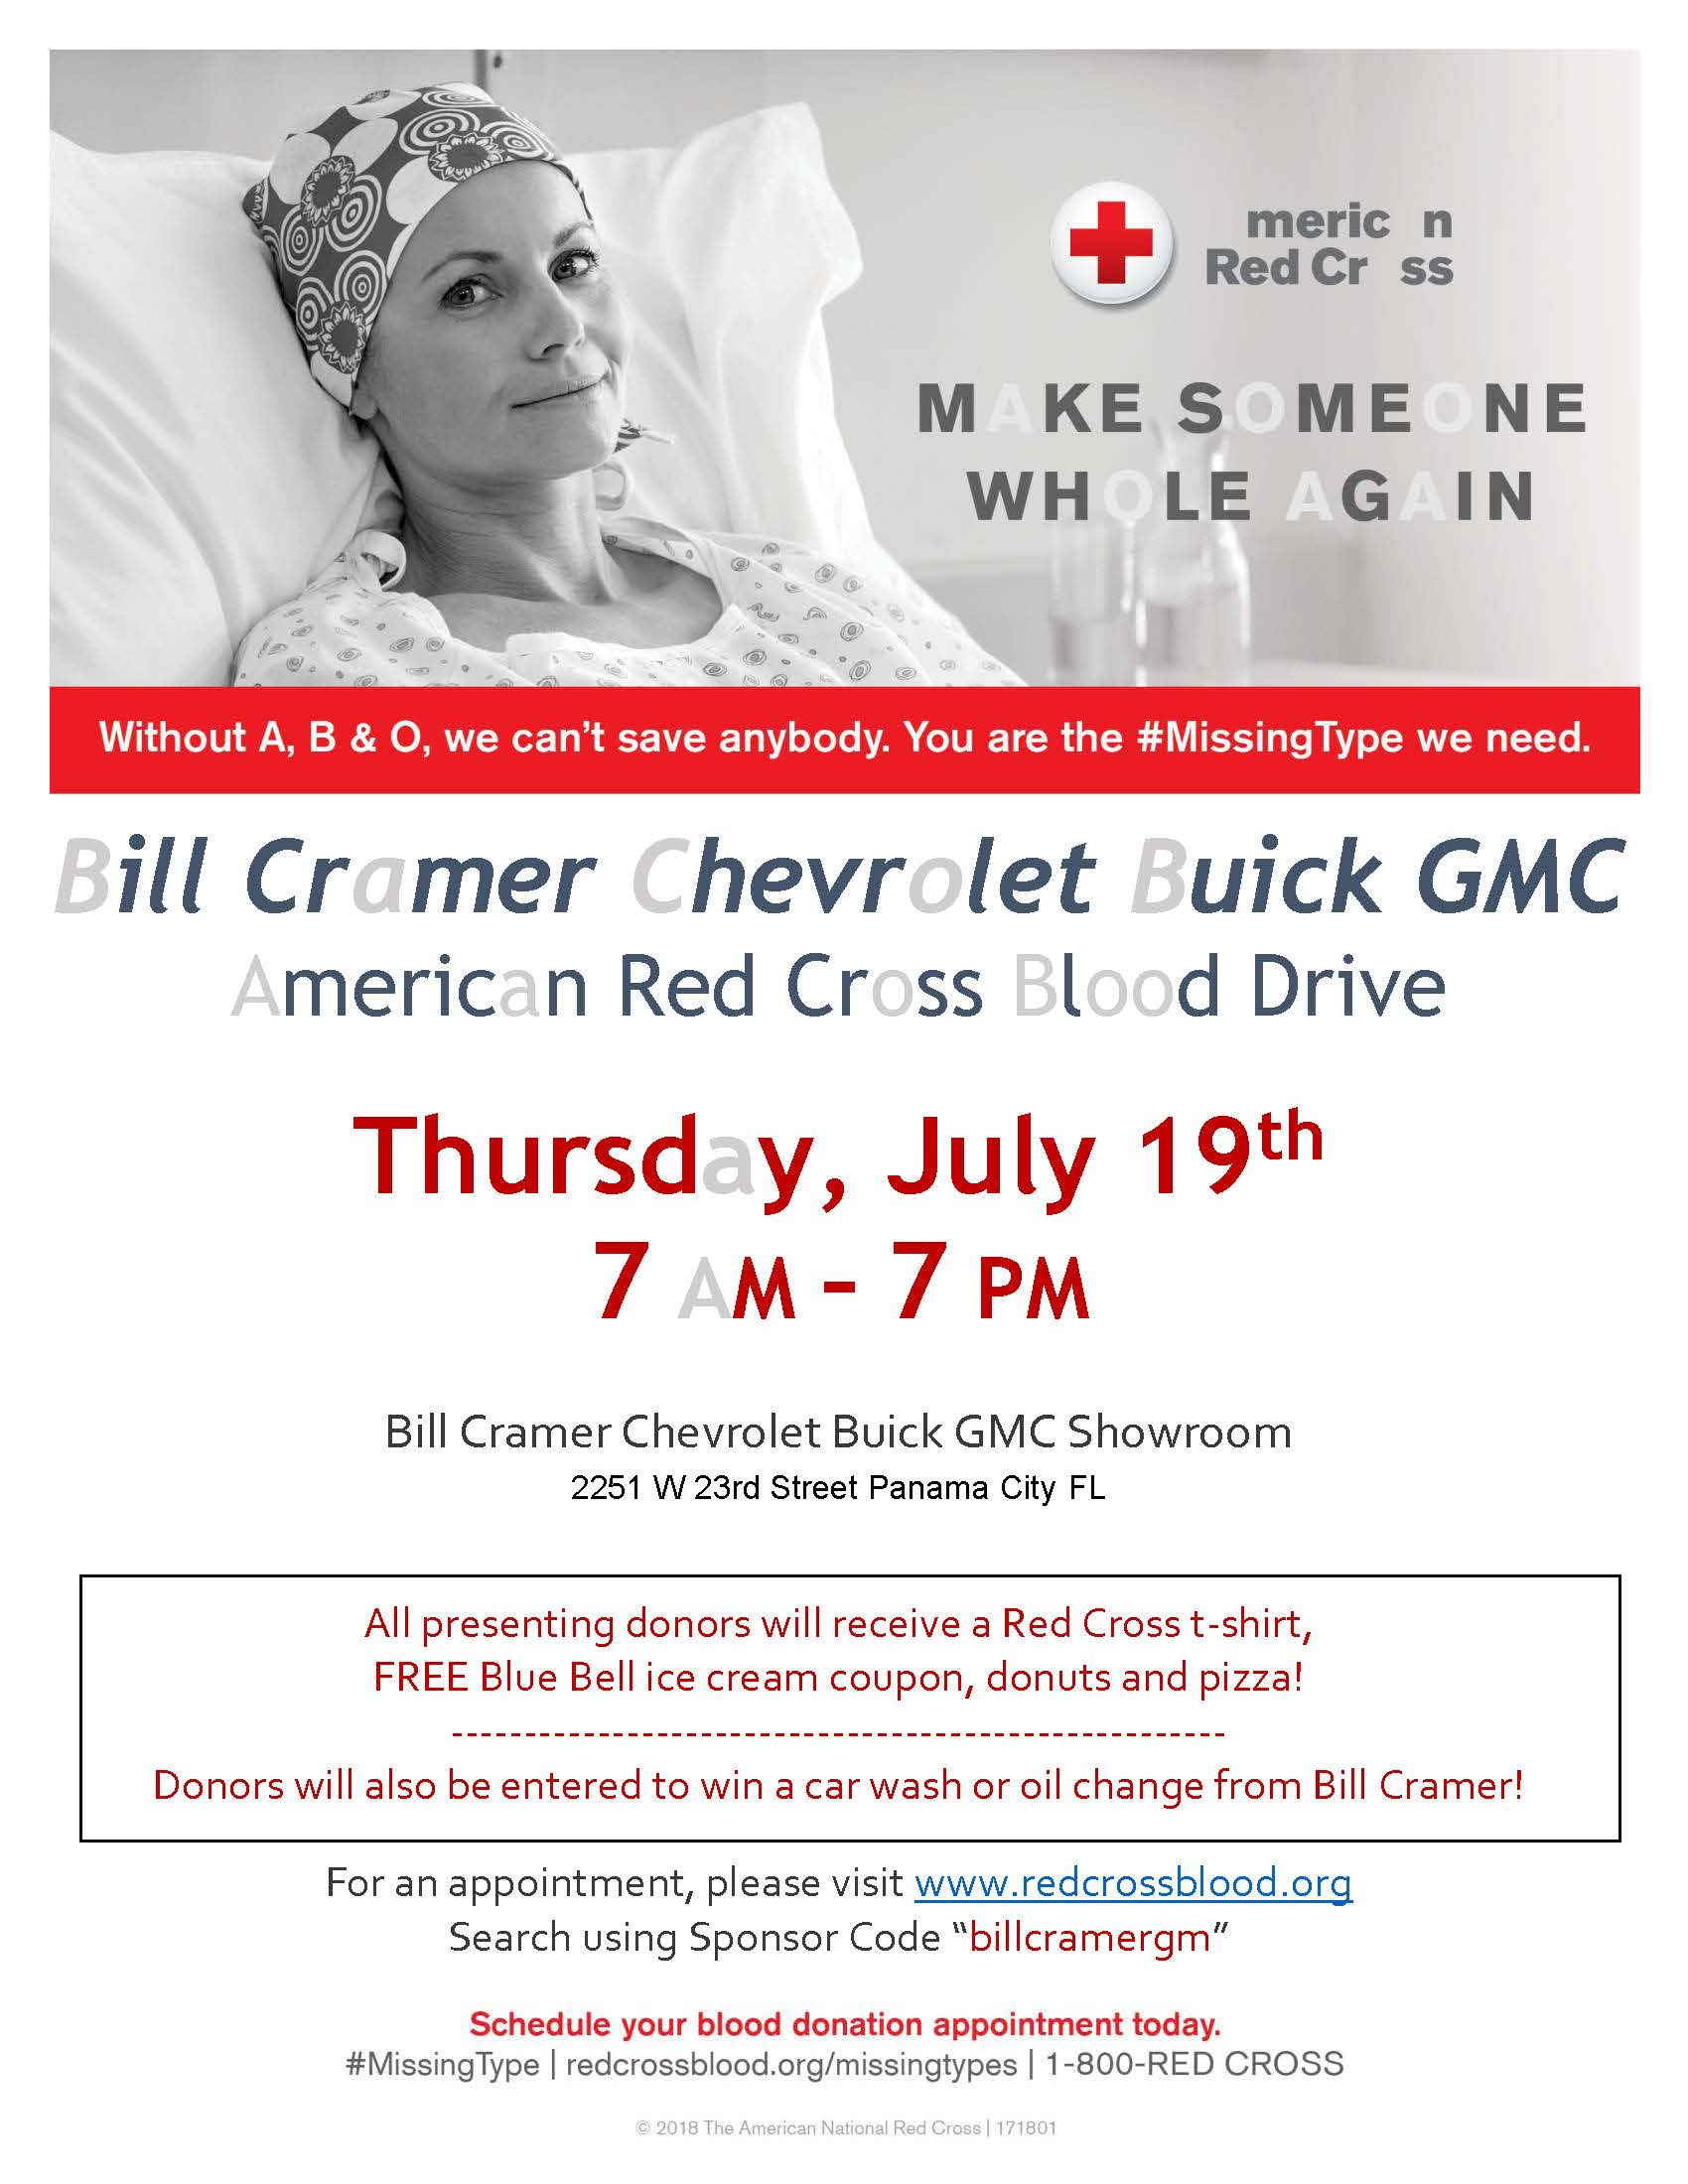 american red cross blood drive - bay county chamber of commerce